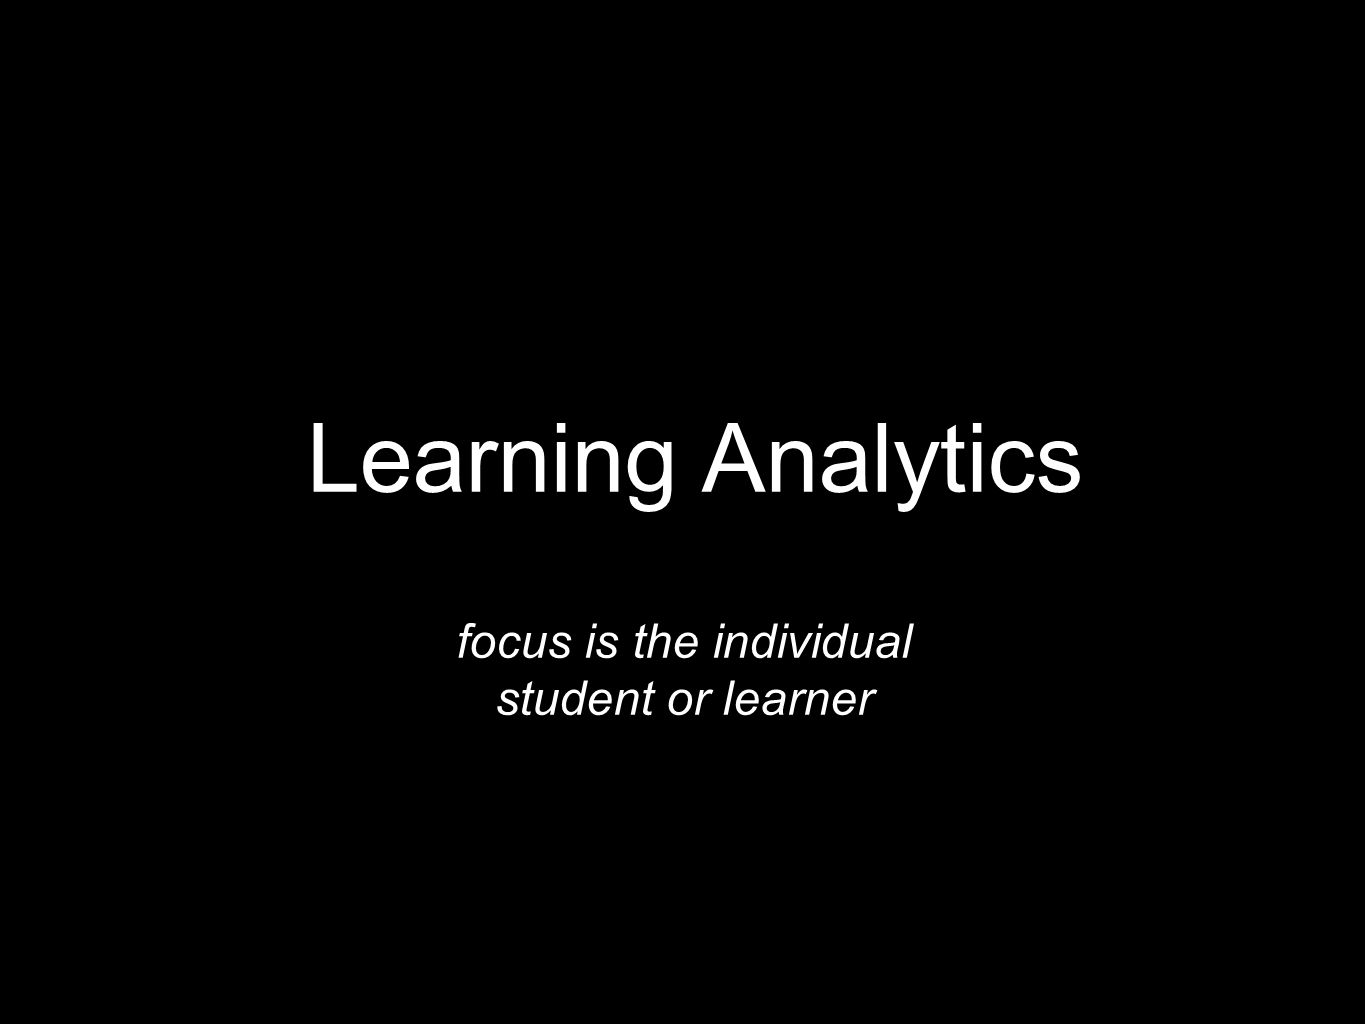 Learning Analytics focus is the individual student or learner